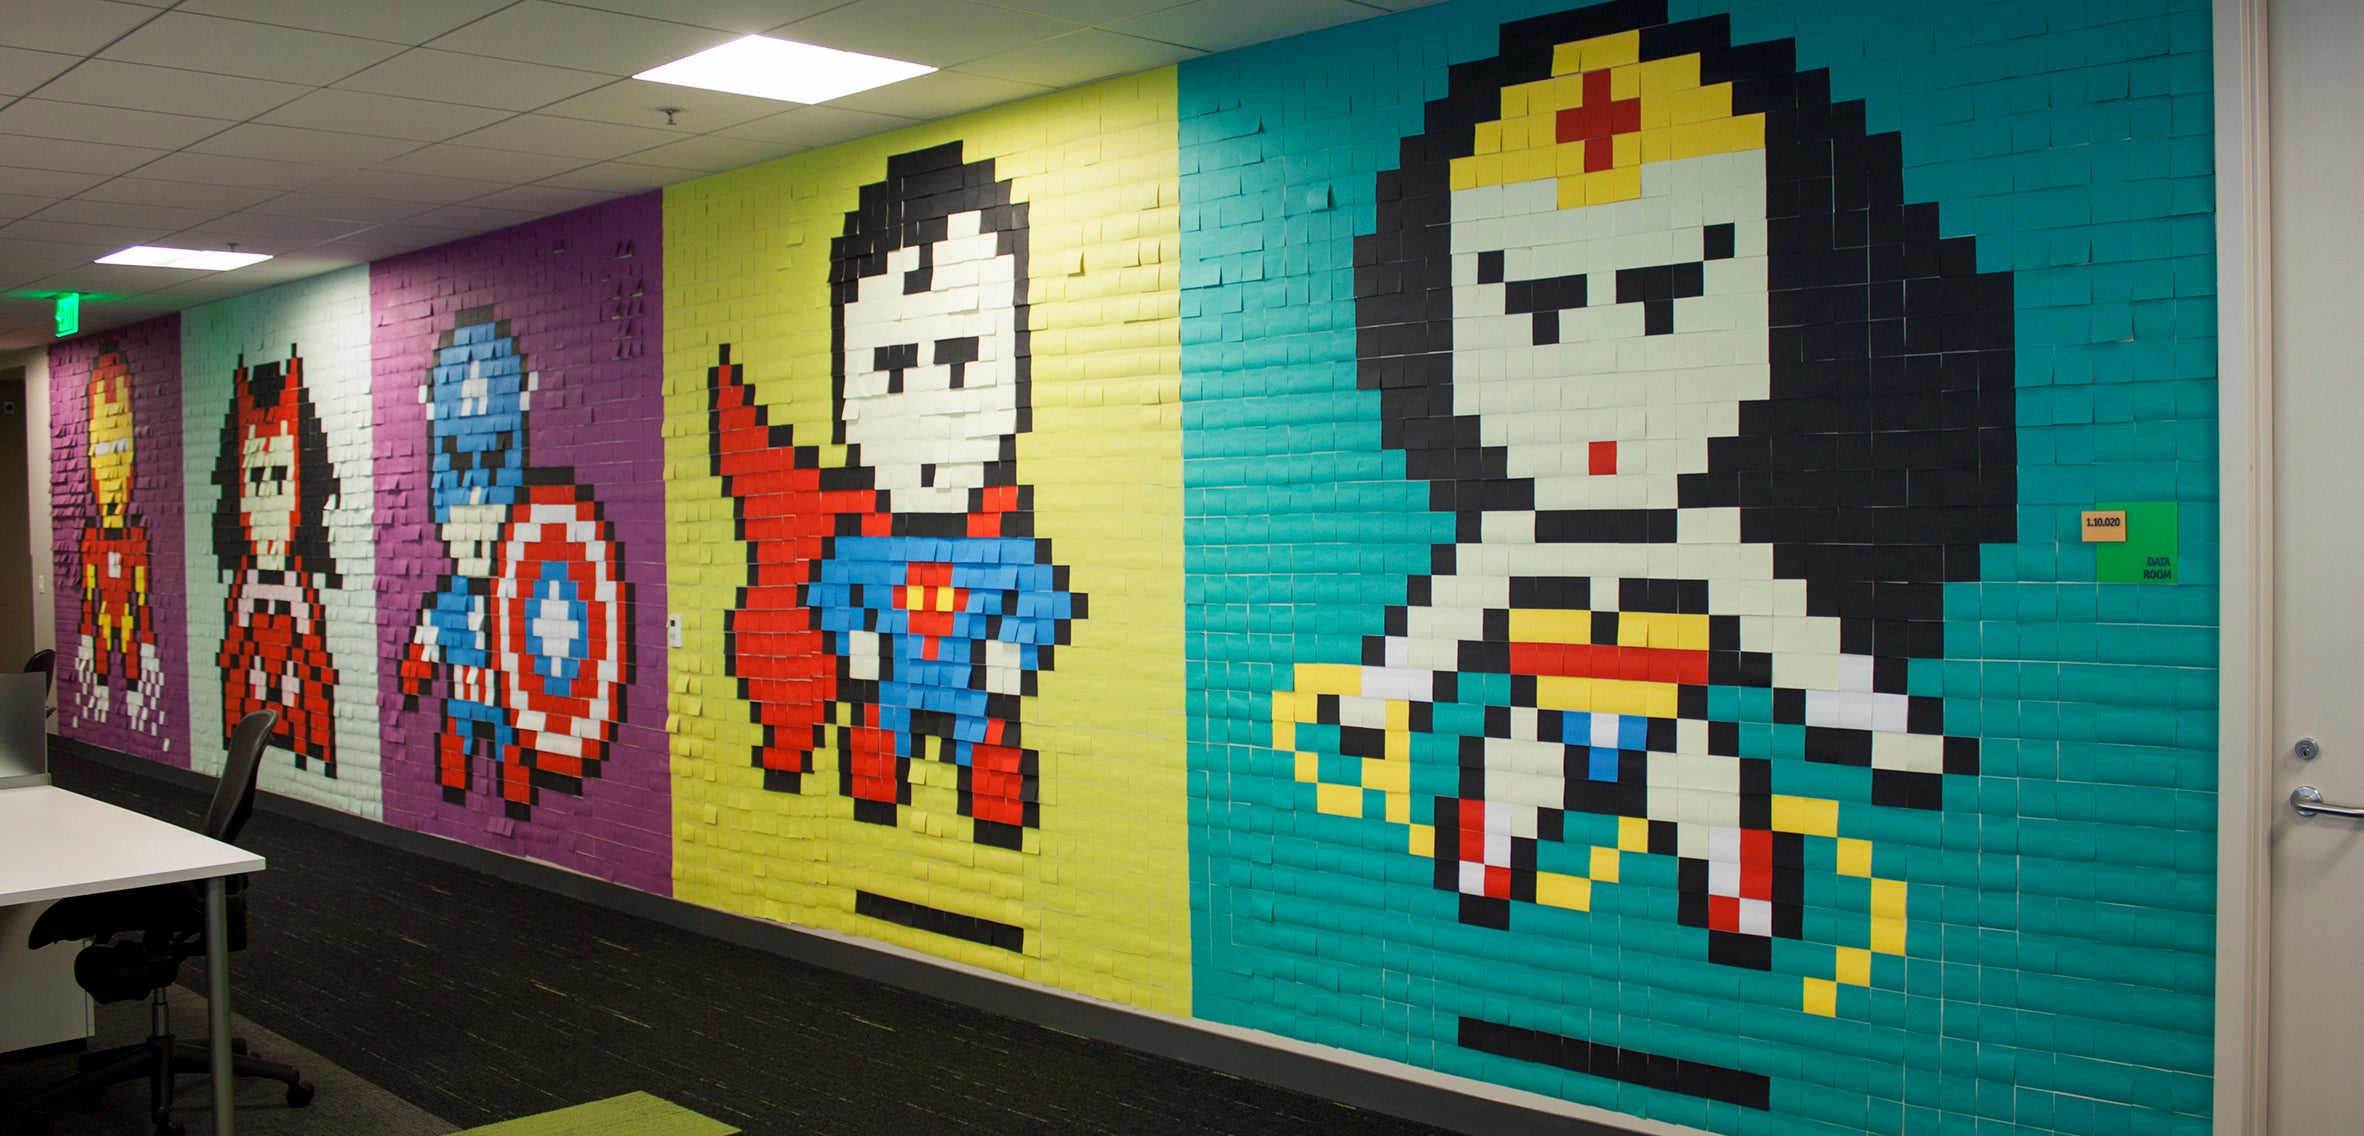 This Guy's Office Post-It Murals Put The Rest Of Us To Shame